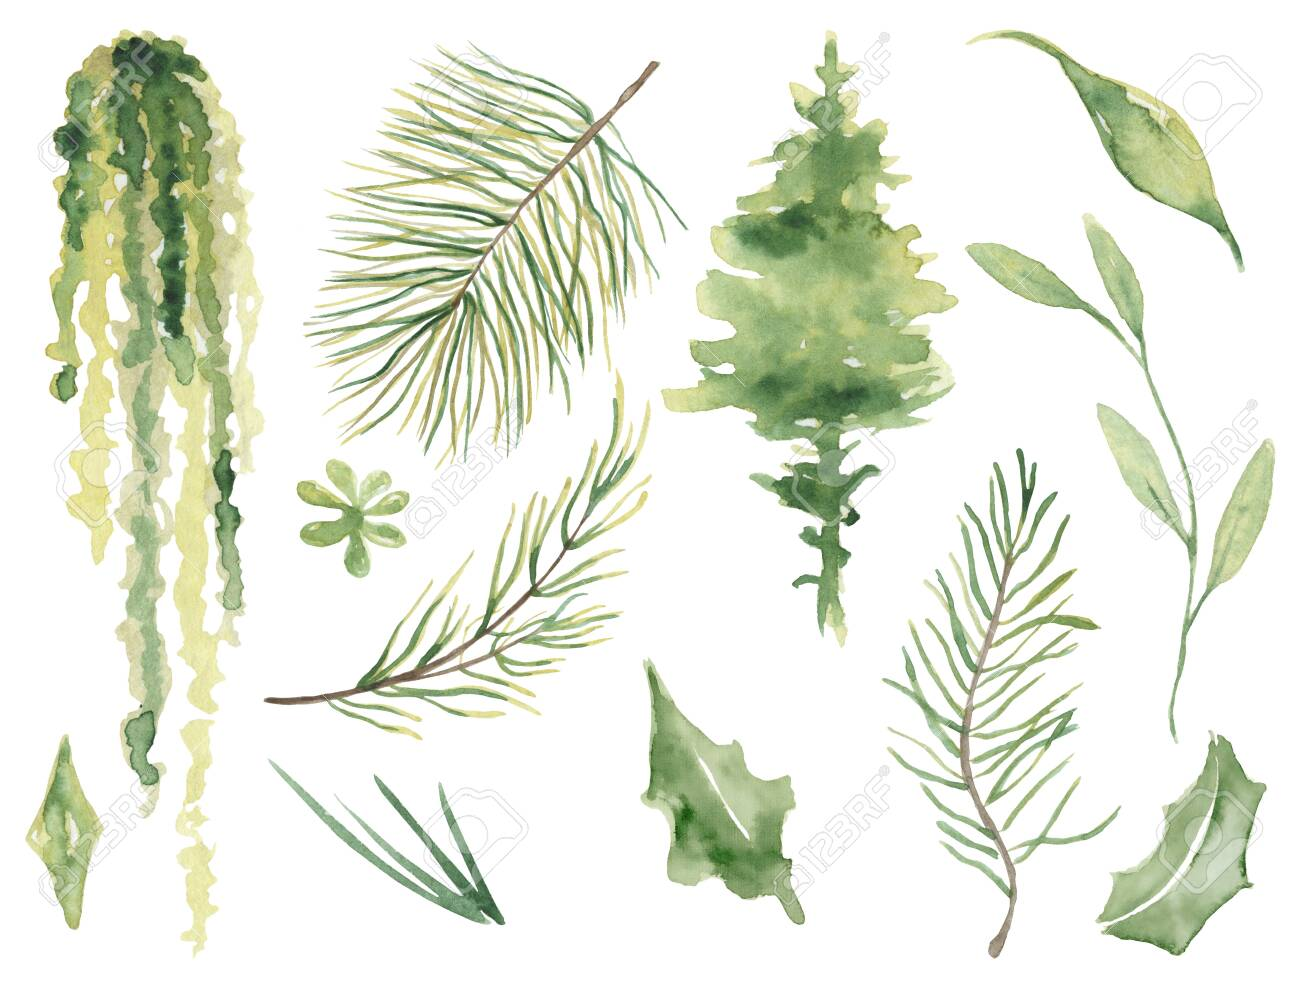 Watercolor pine brunches hand drawn christmas decor illustration - 154865664